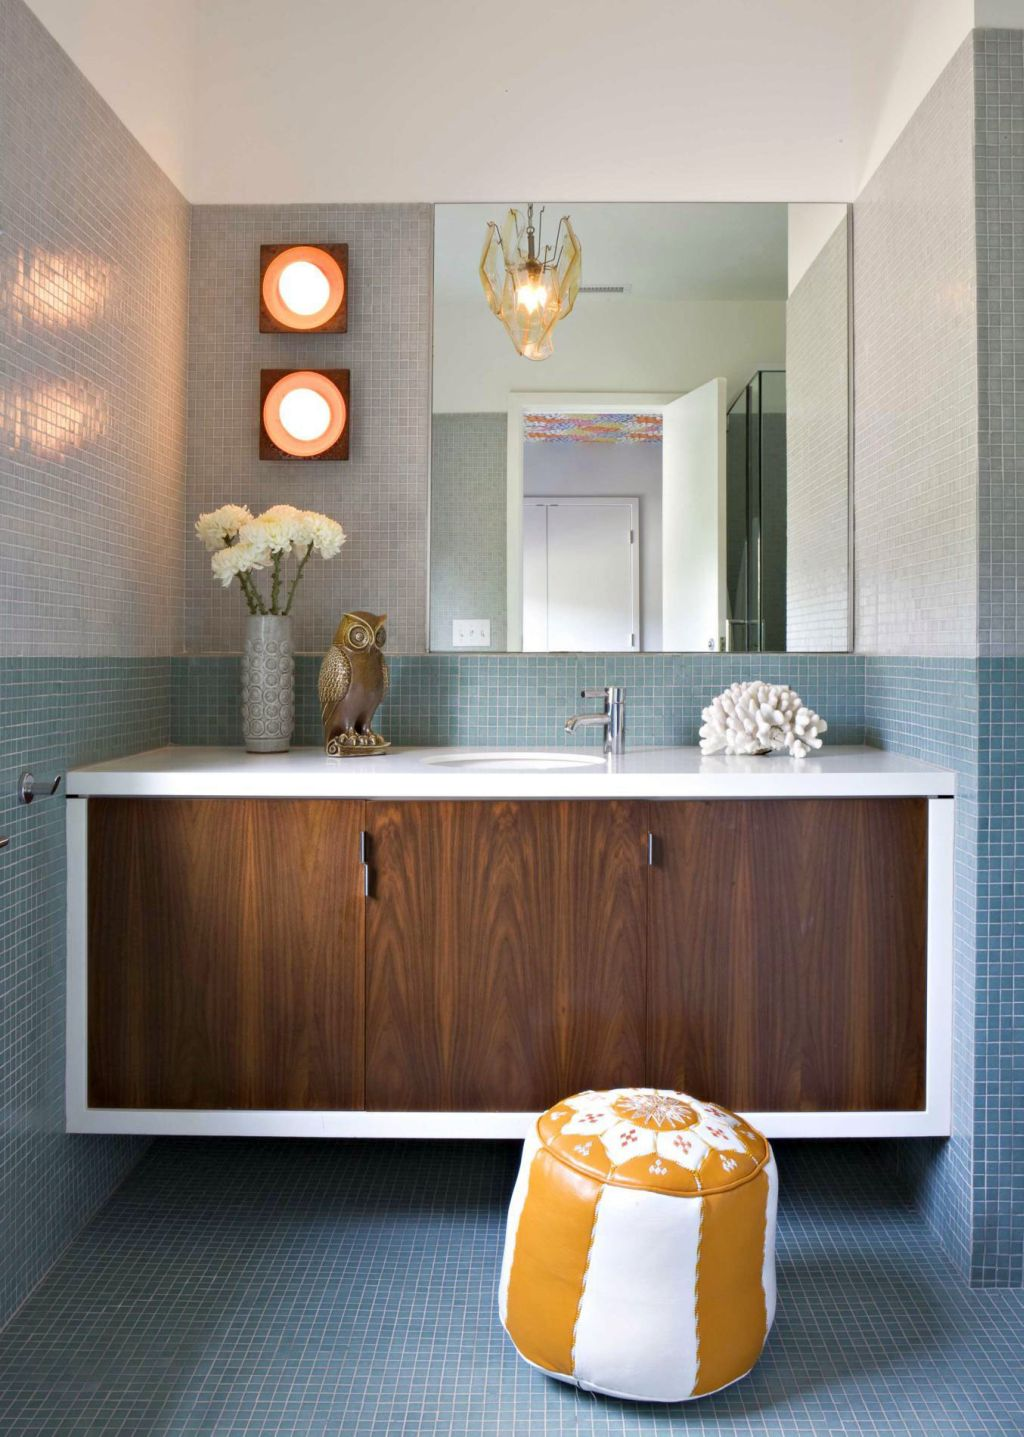 Vanity Lighting Ideas Bathroom : 20 Dazzling Bathroom Vanity Lighting Ideas